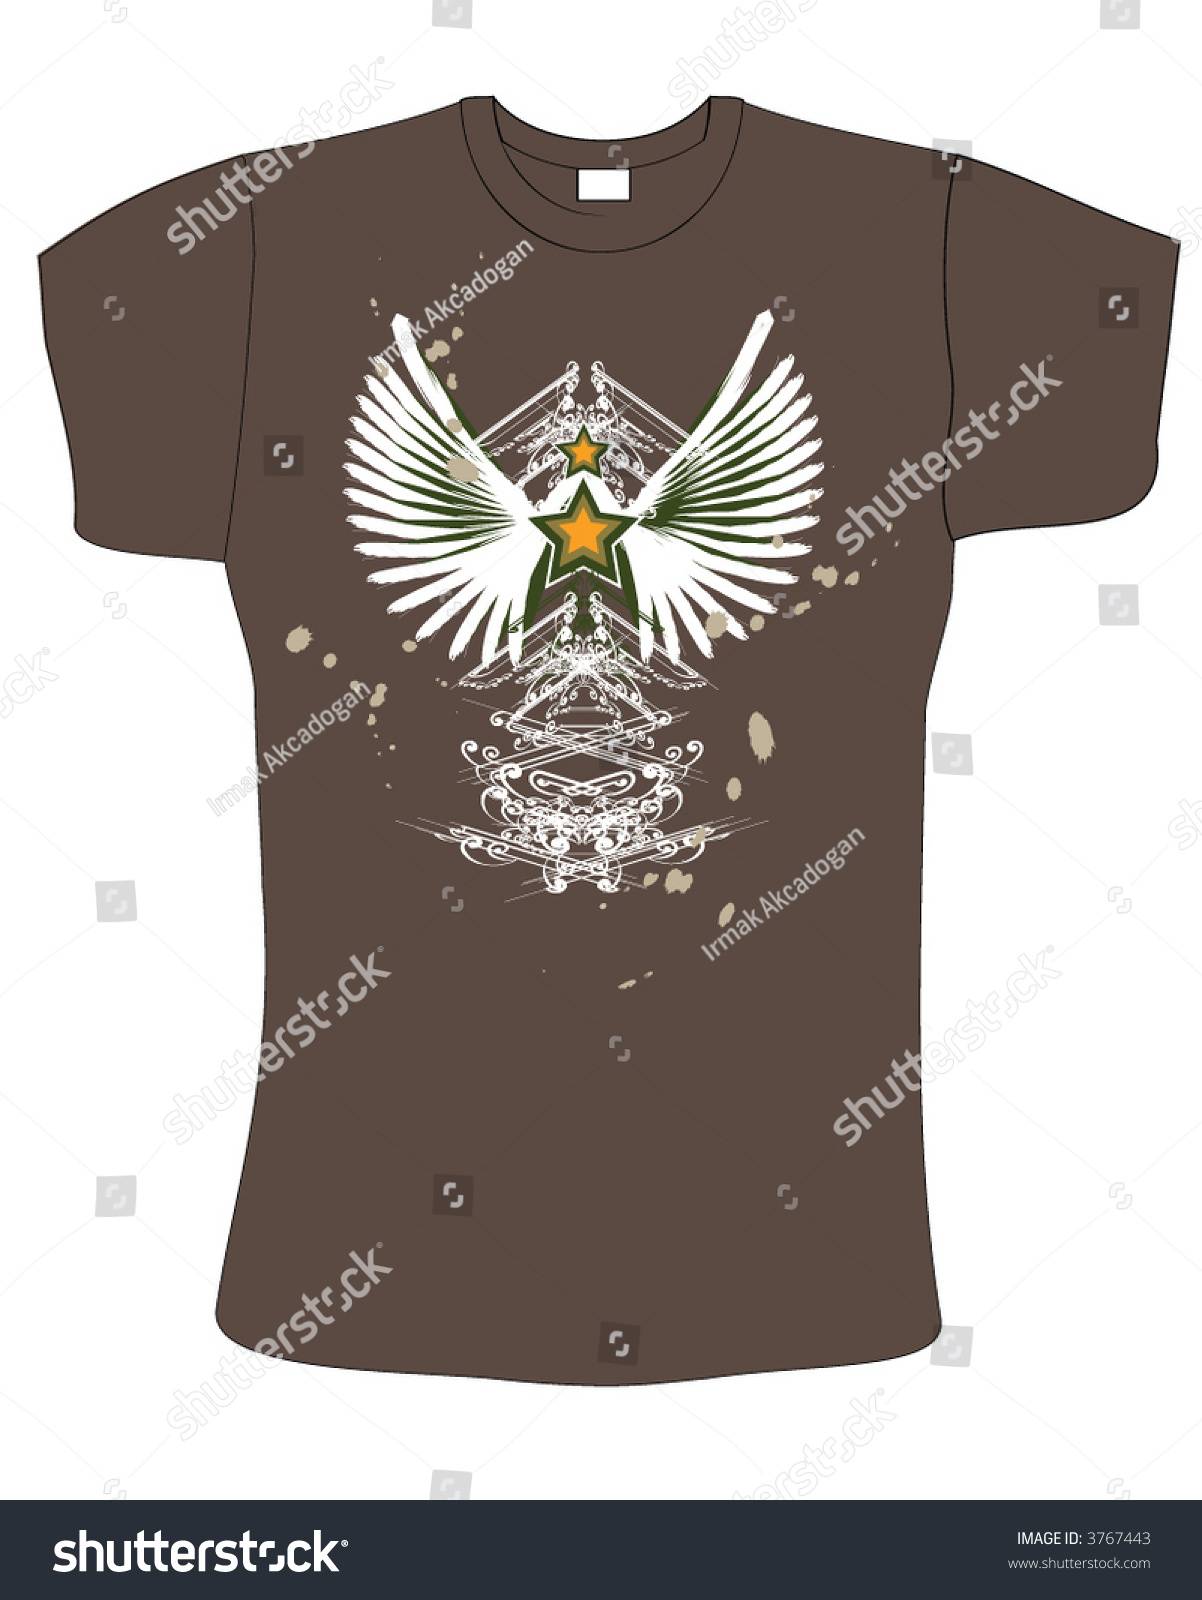 Retro abstract brown color vector t shirt design 3767443 for Shutterstock t shirt design